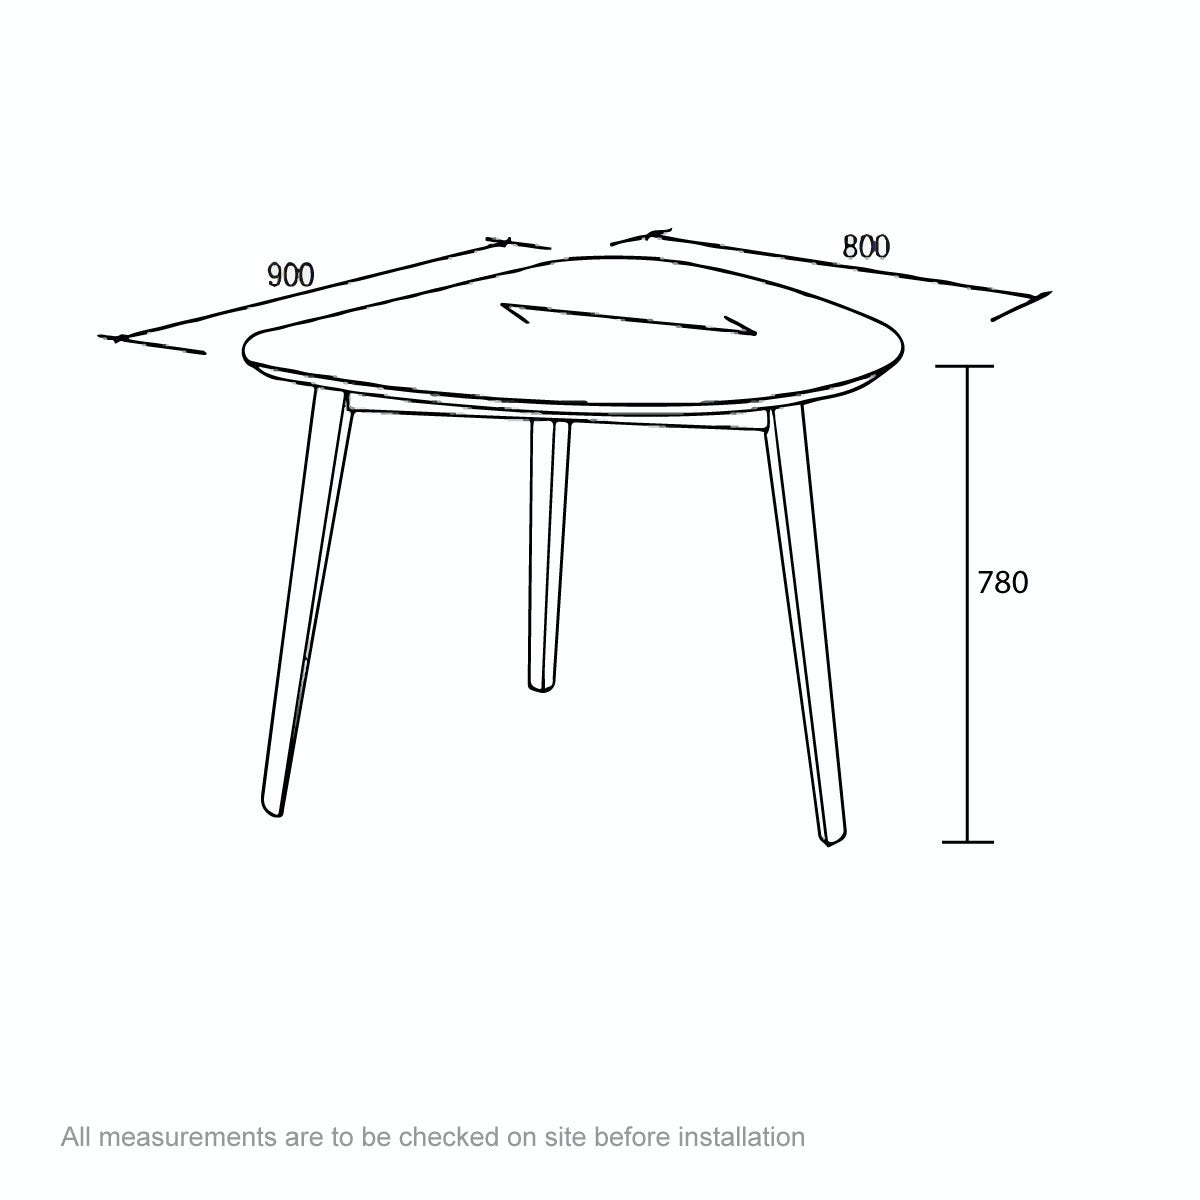 Dimensions for Ernest walnut apartment table